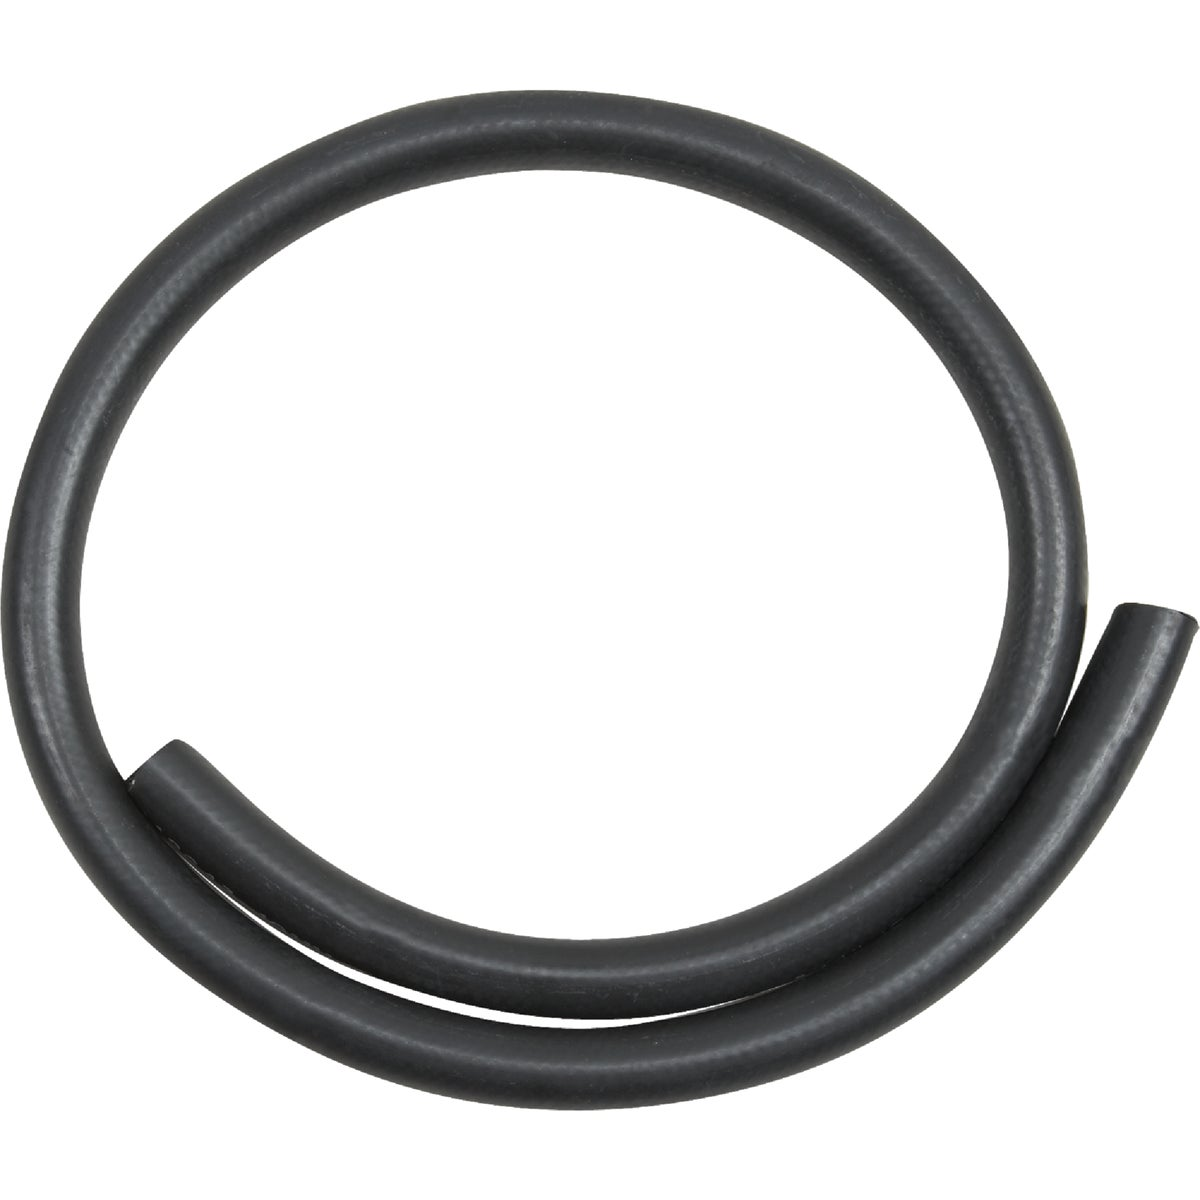 1X3/4X75' HEATER HOSE - RHNL by Watts Regulator Co